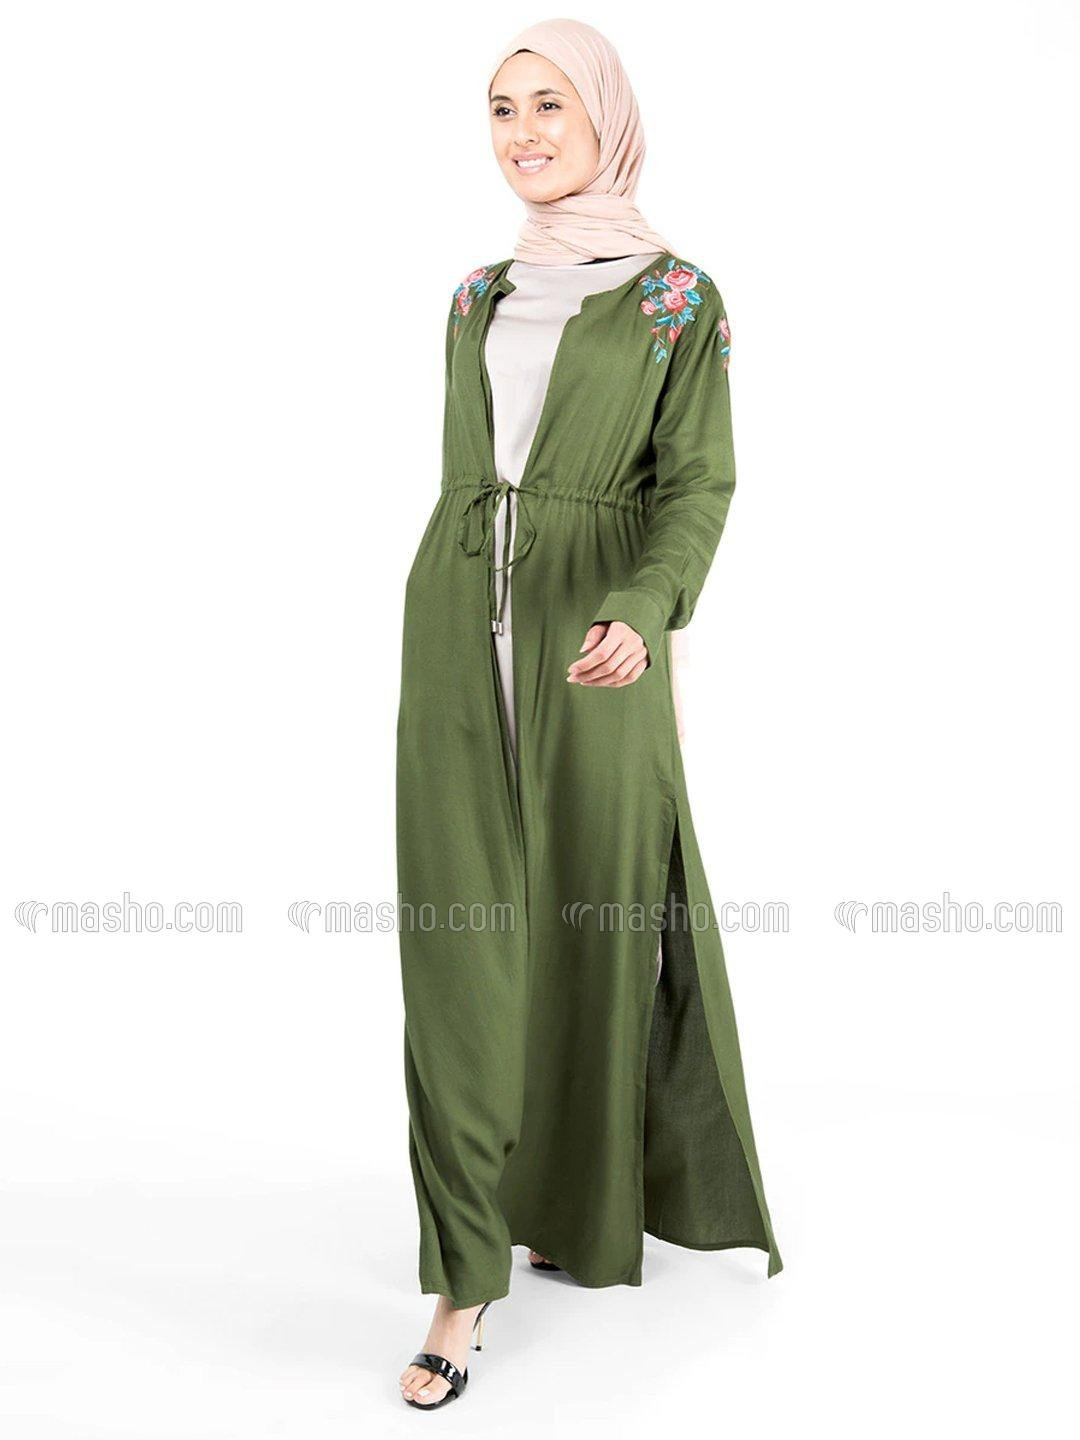 100% Rayon Floral Embroidered Outerwear In Green